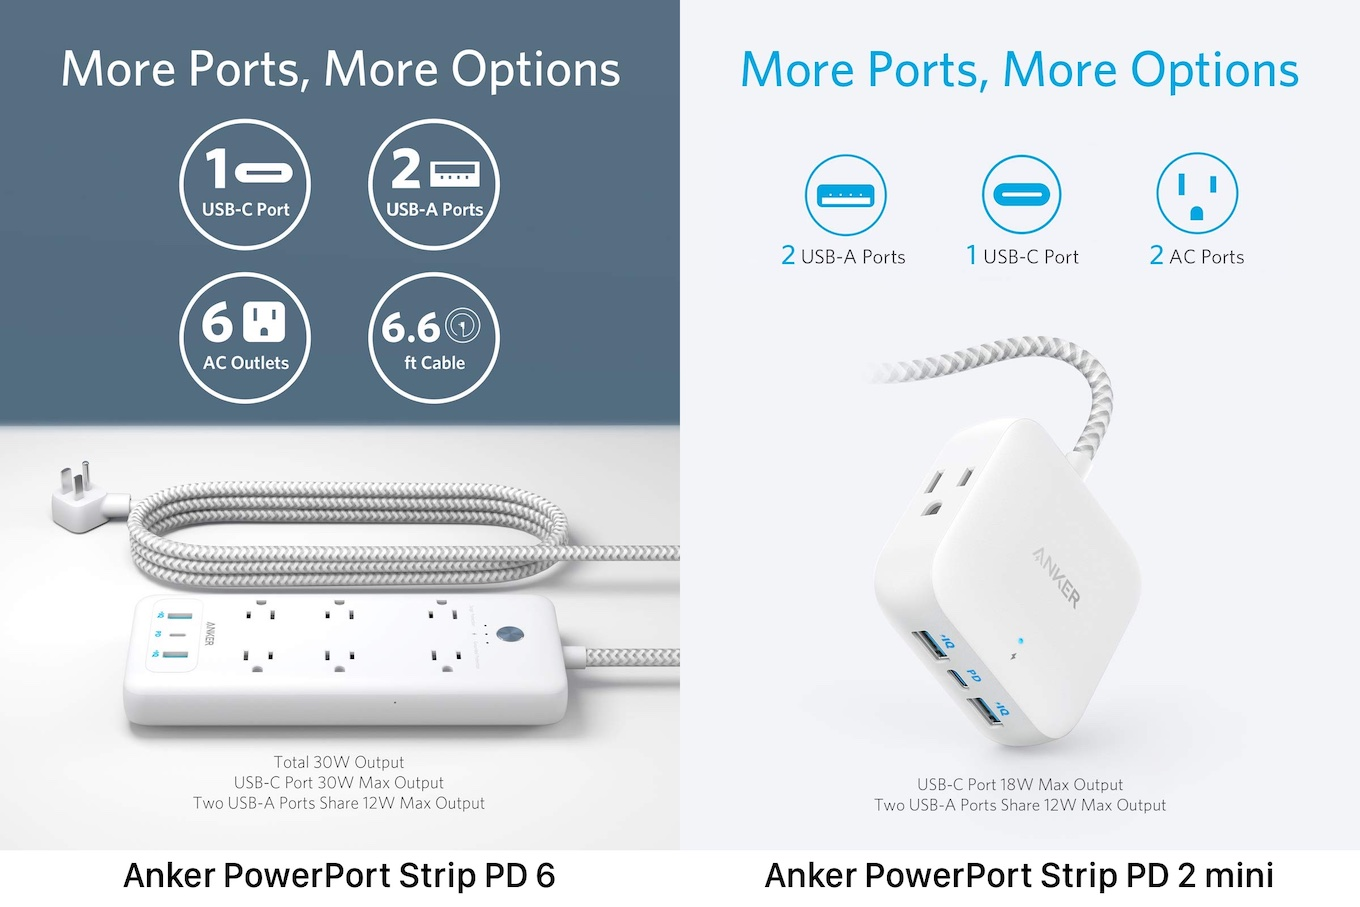 Anker PowerPort Strip PD 6とPD 2 mini